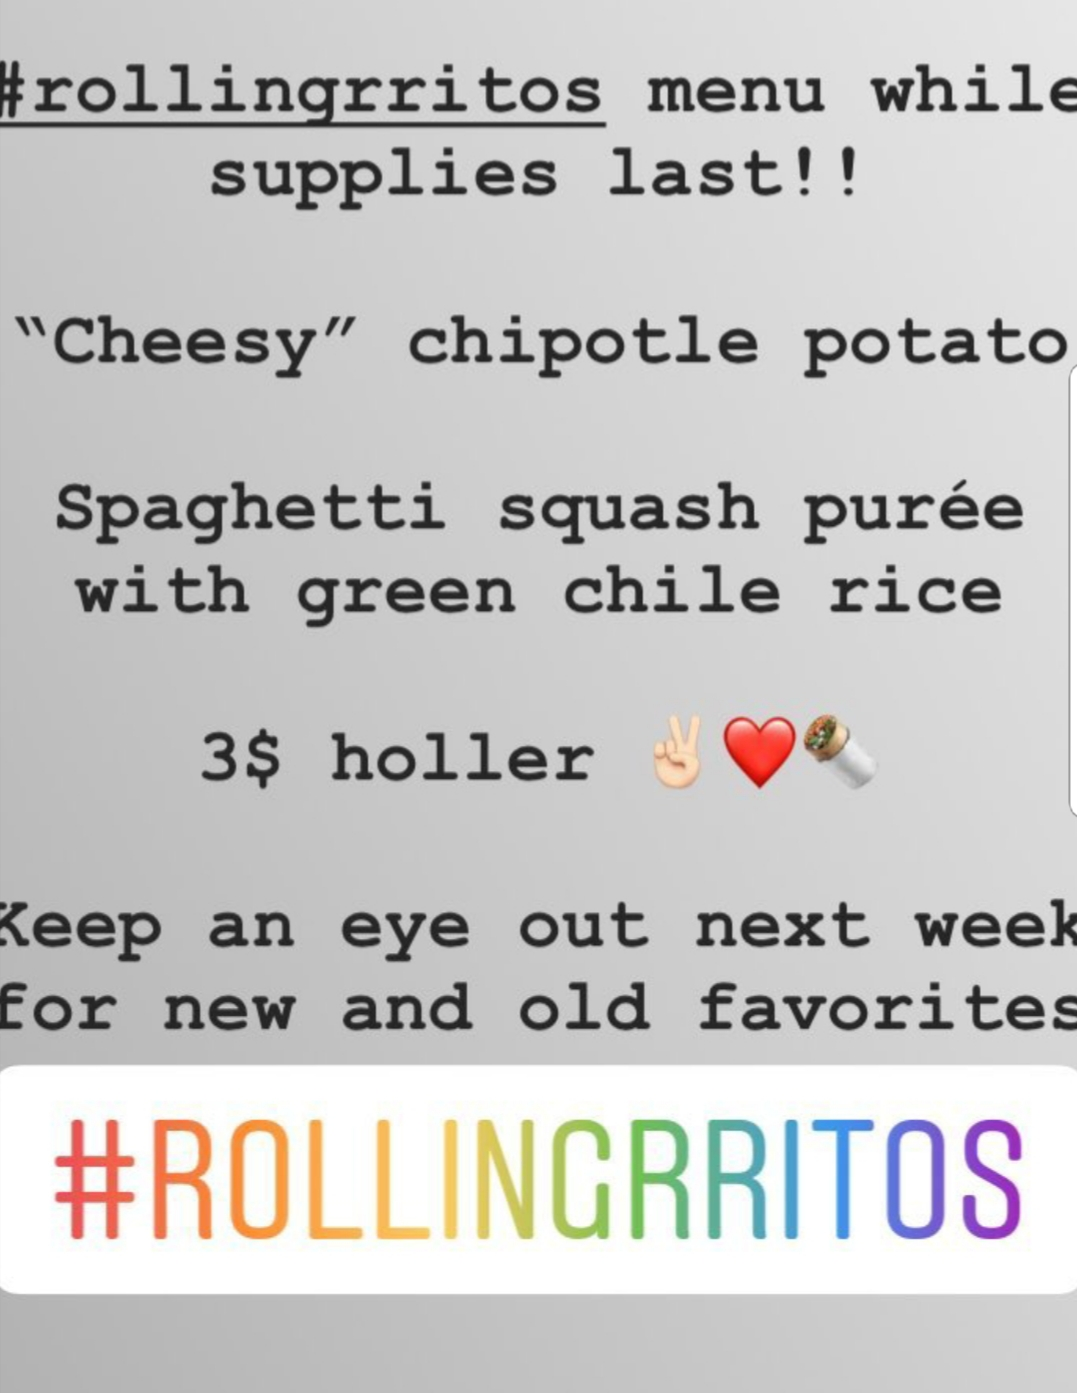 Burrito menu for the day - Get 'em while they last! Contact Cody Smith @ 575-621-1387 or message on FacebookORInstagram